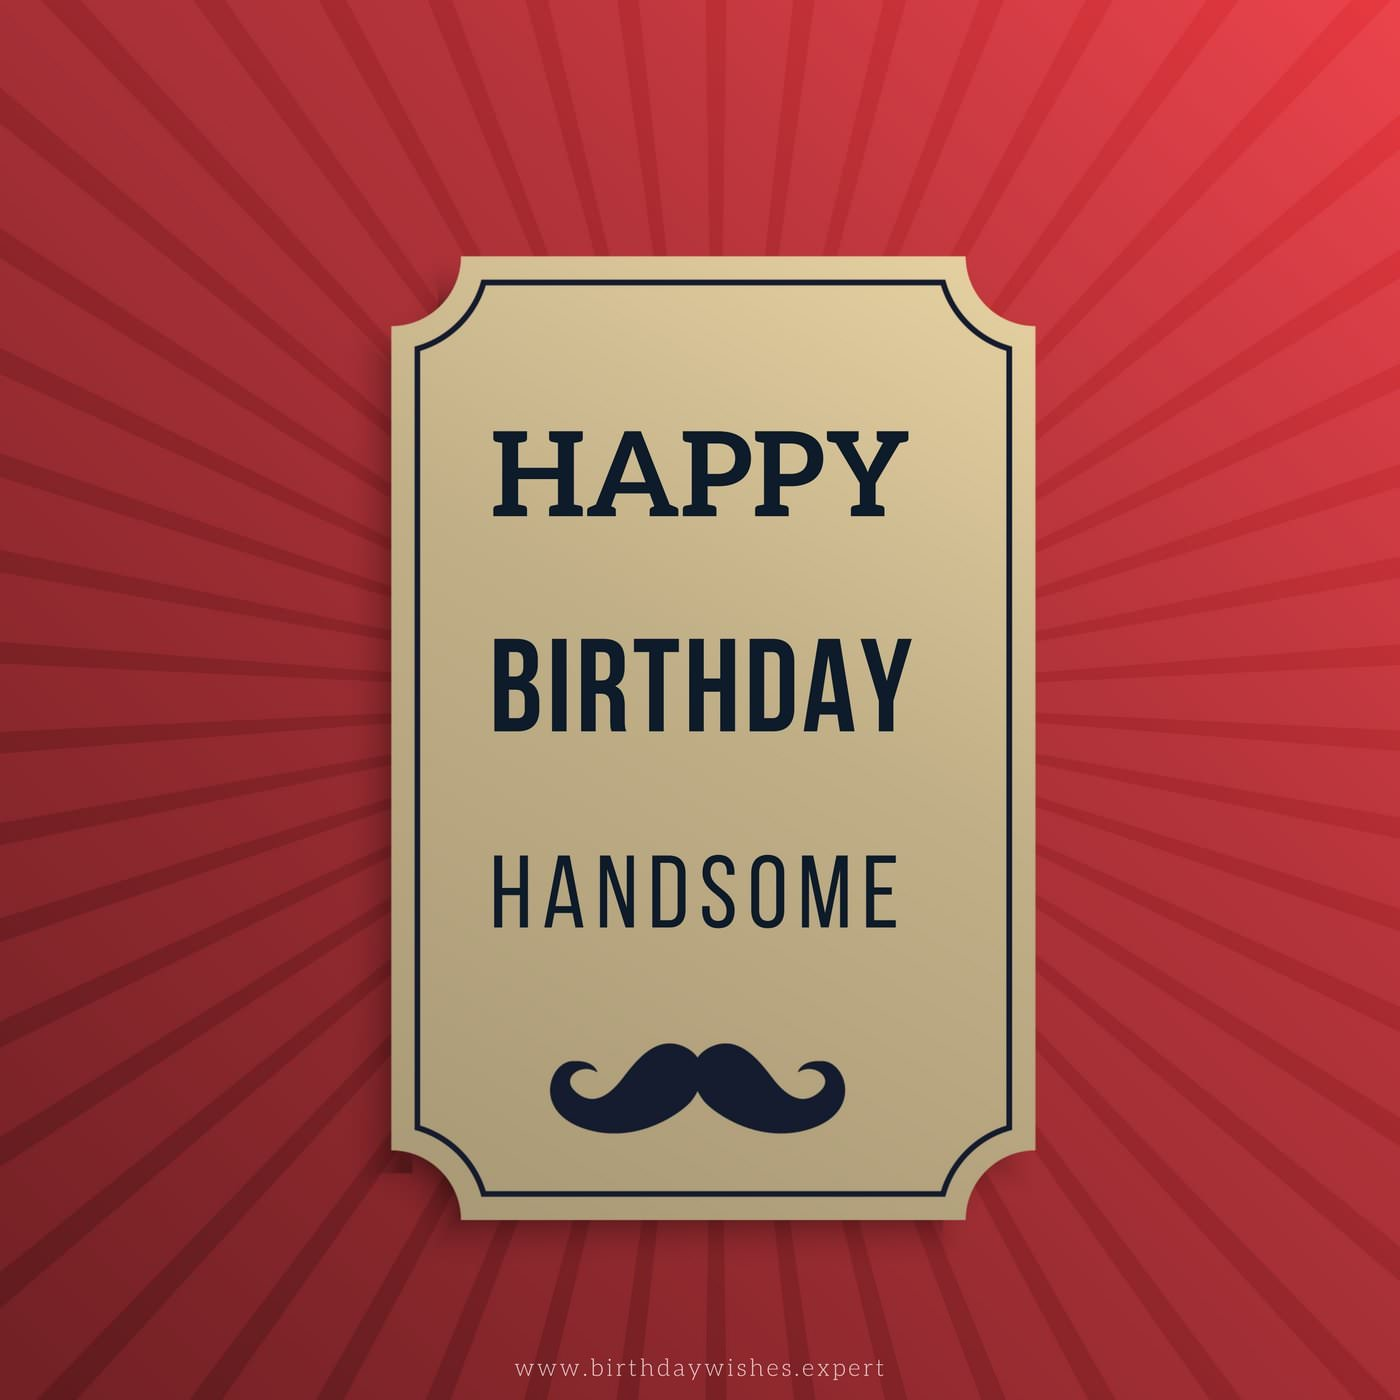 Original Birthday Quotes For Your Husband